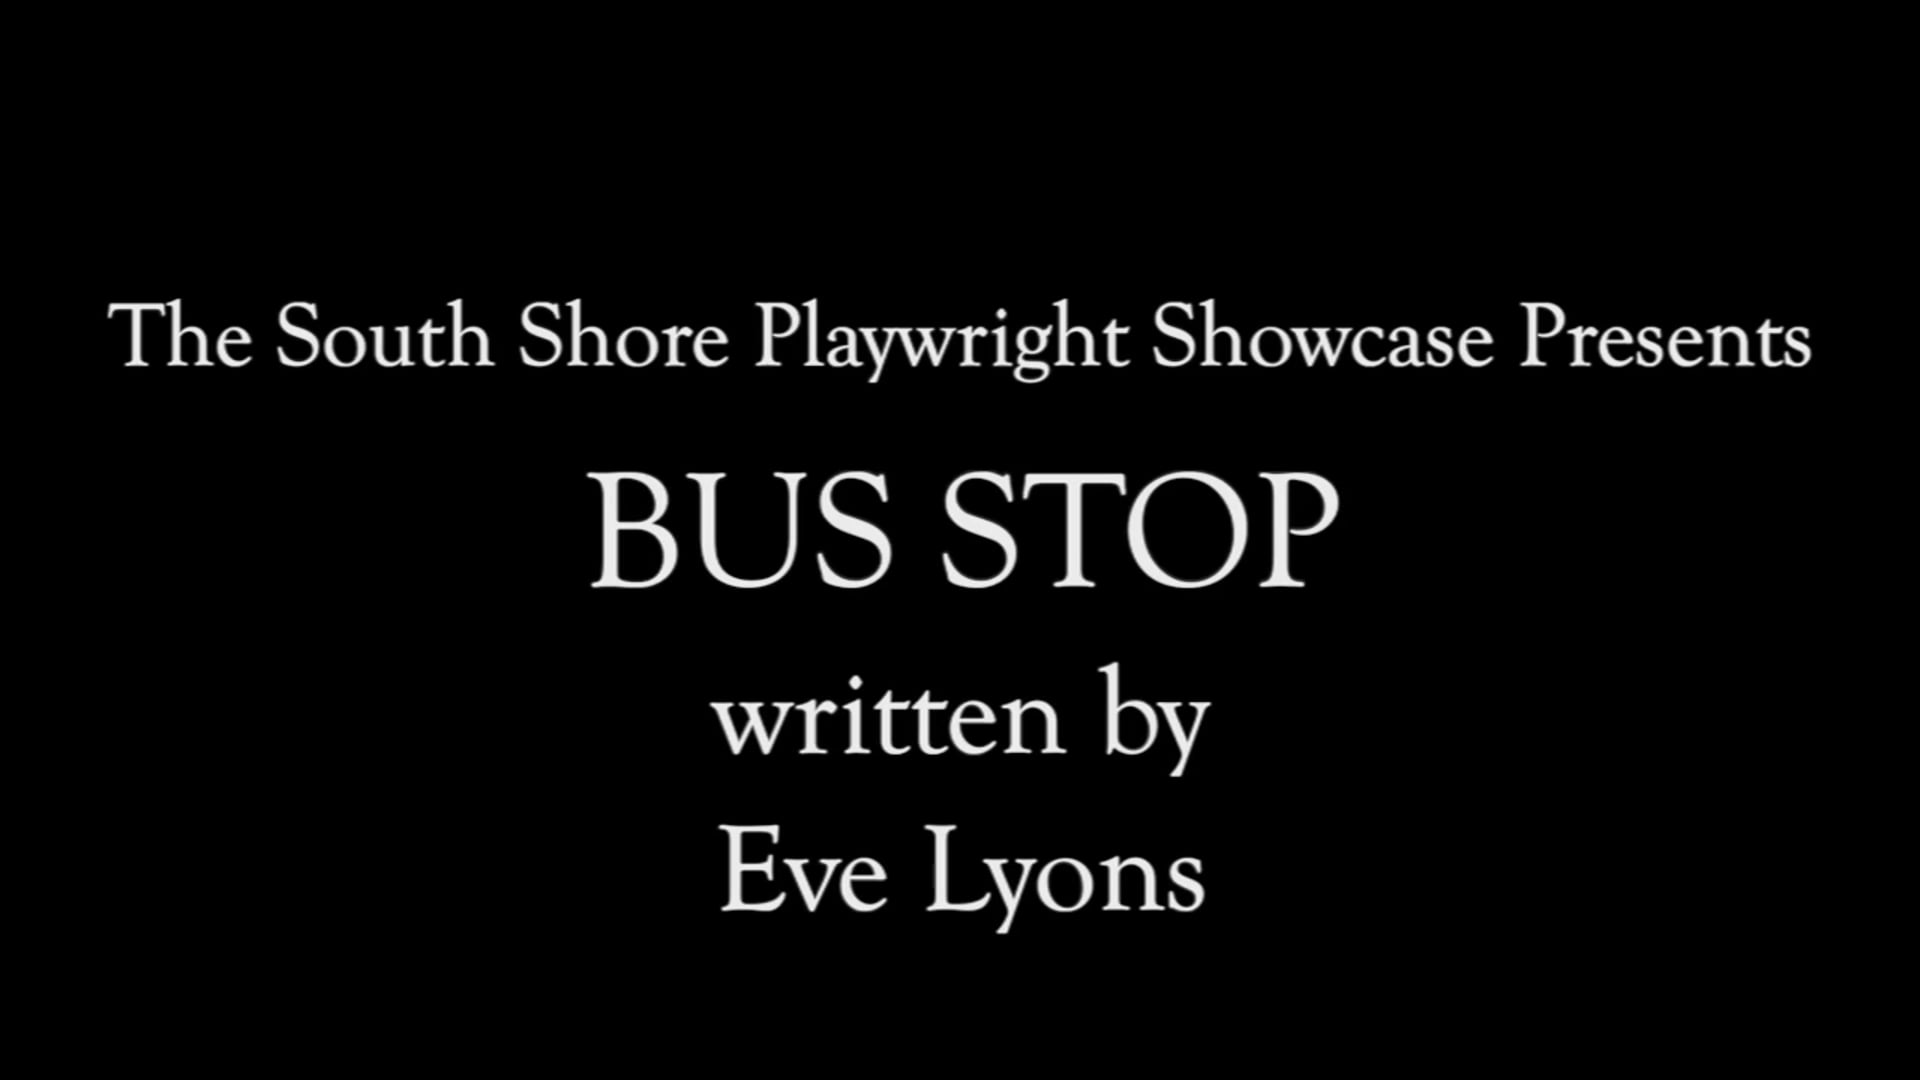 Bus Stop by Eve Lyons (South Shore Playwright Showcase Presents)